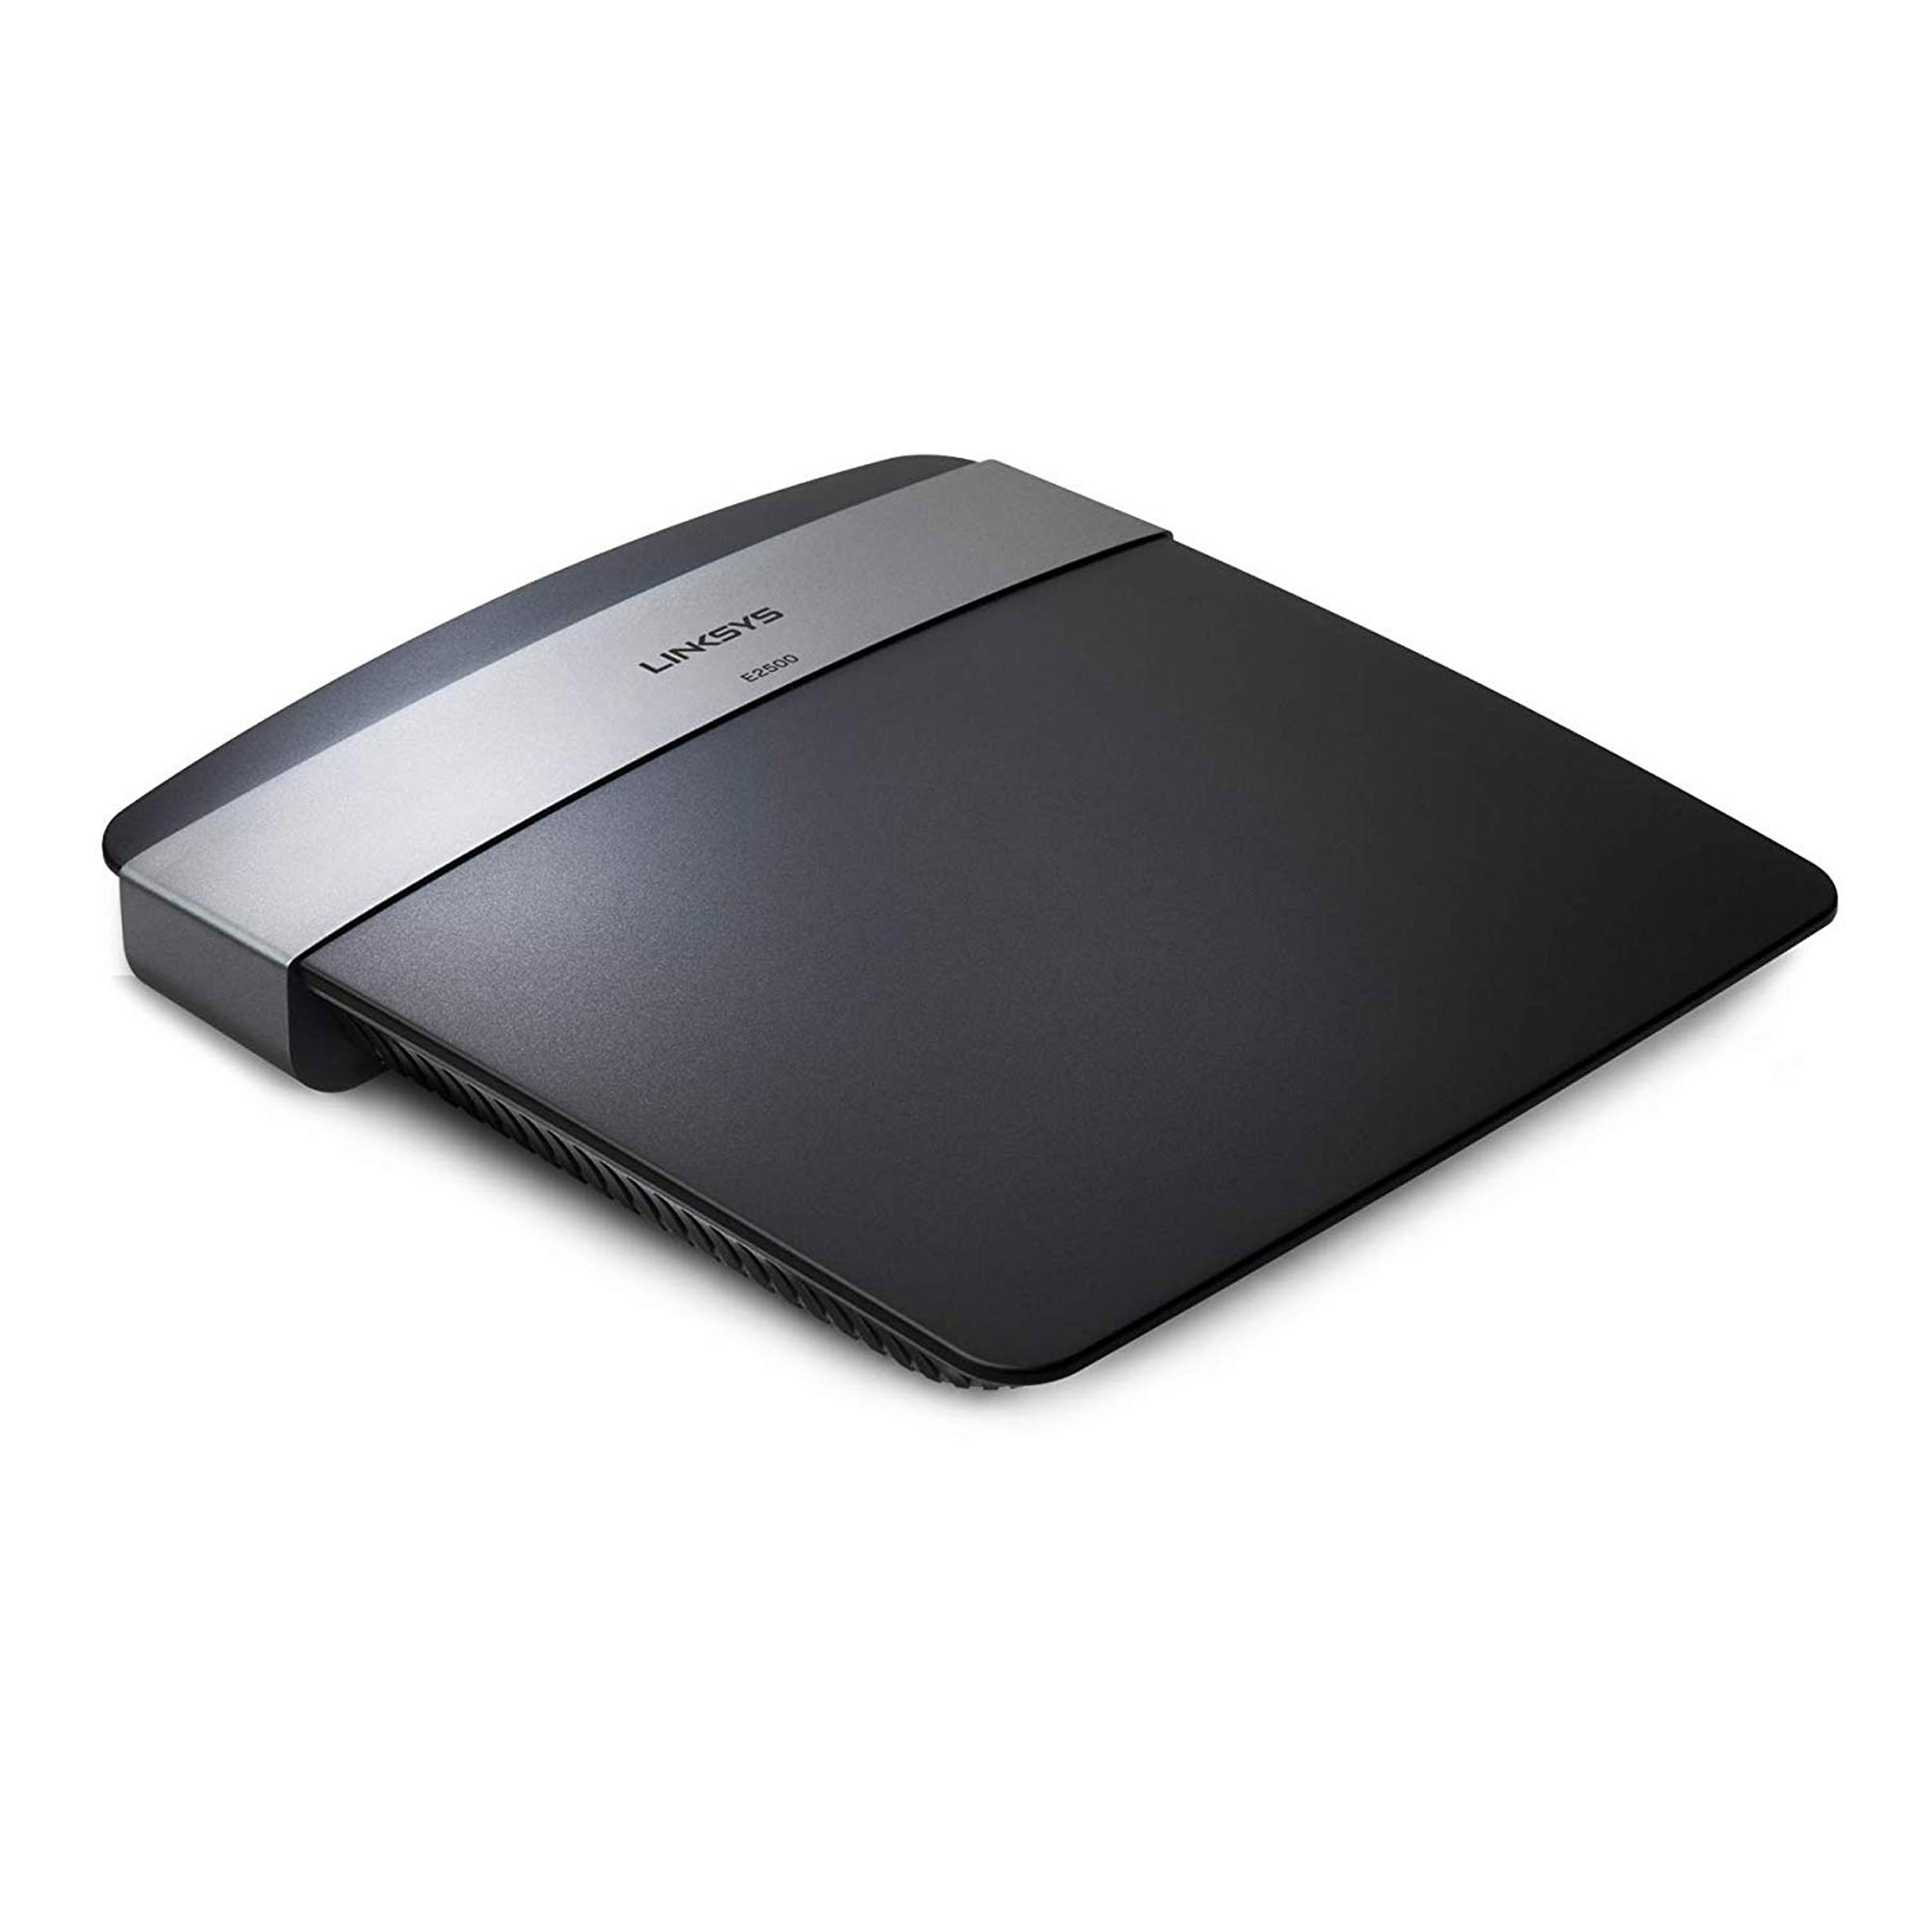 Linksys E2500 N600 Dual-Band Wi-Fi Router